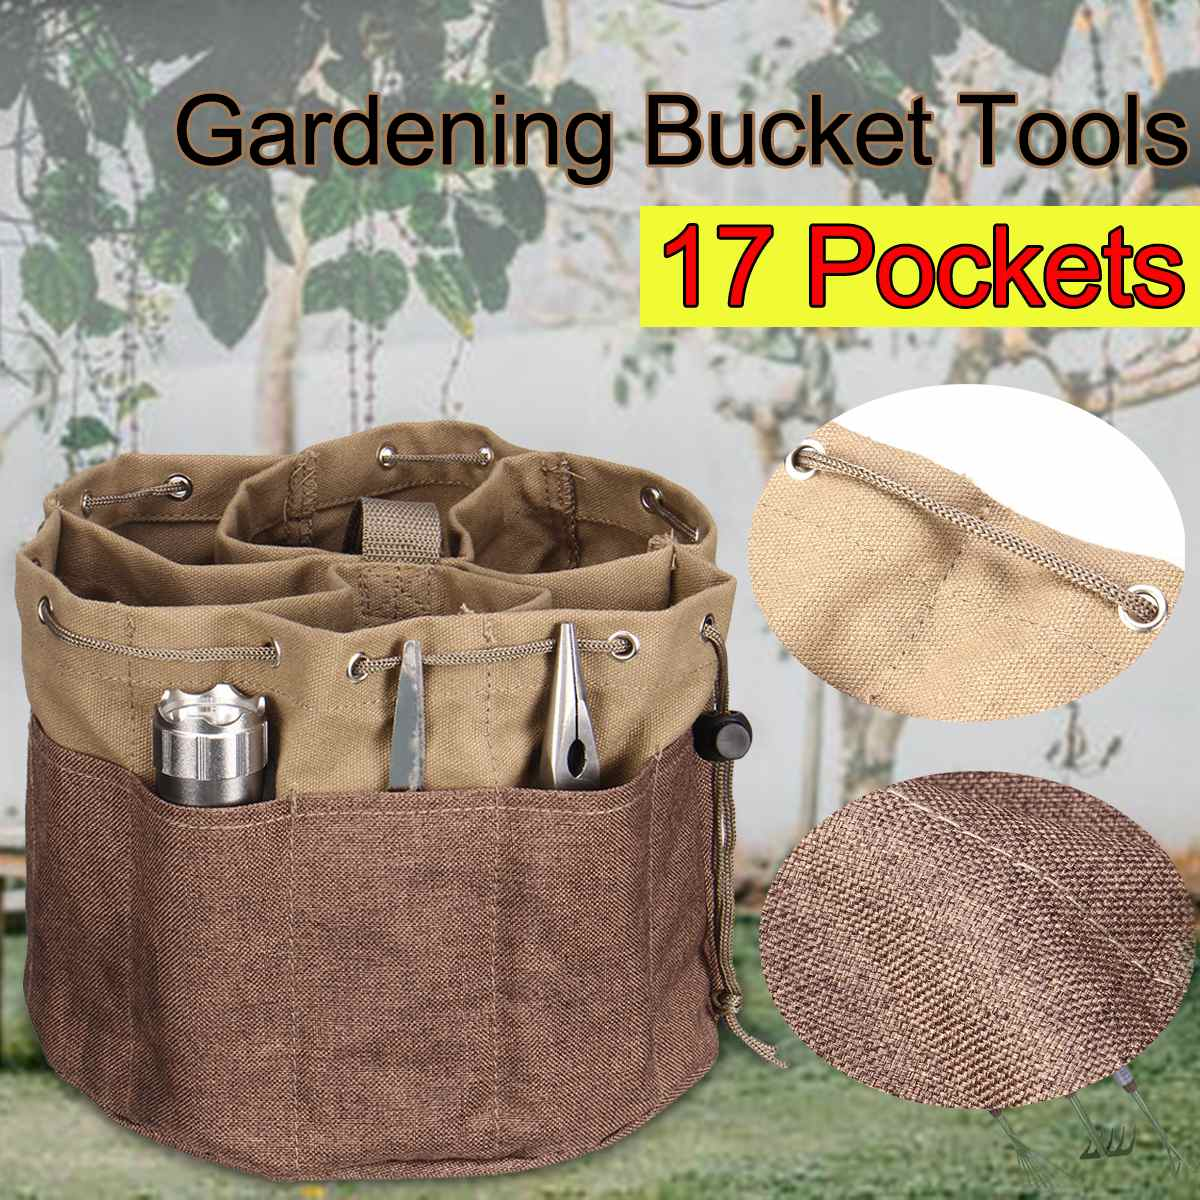 Bucket Organizer Tote Bag Large Capacity 17 Pockets Auto Tool Holder Toolkit Storage Bag Drawstring Pockets For Toolbag Storage